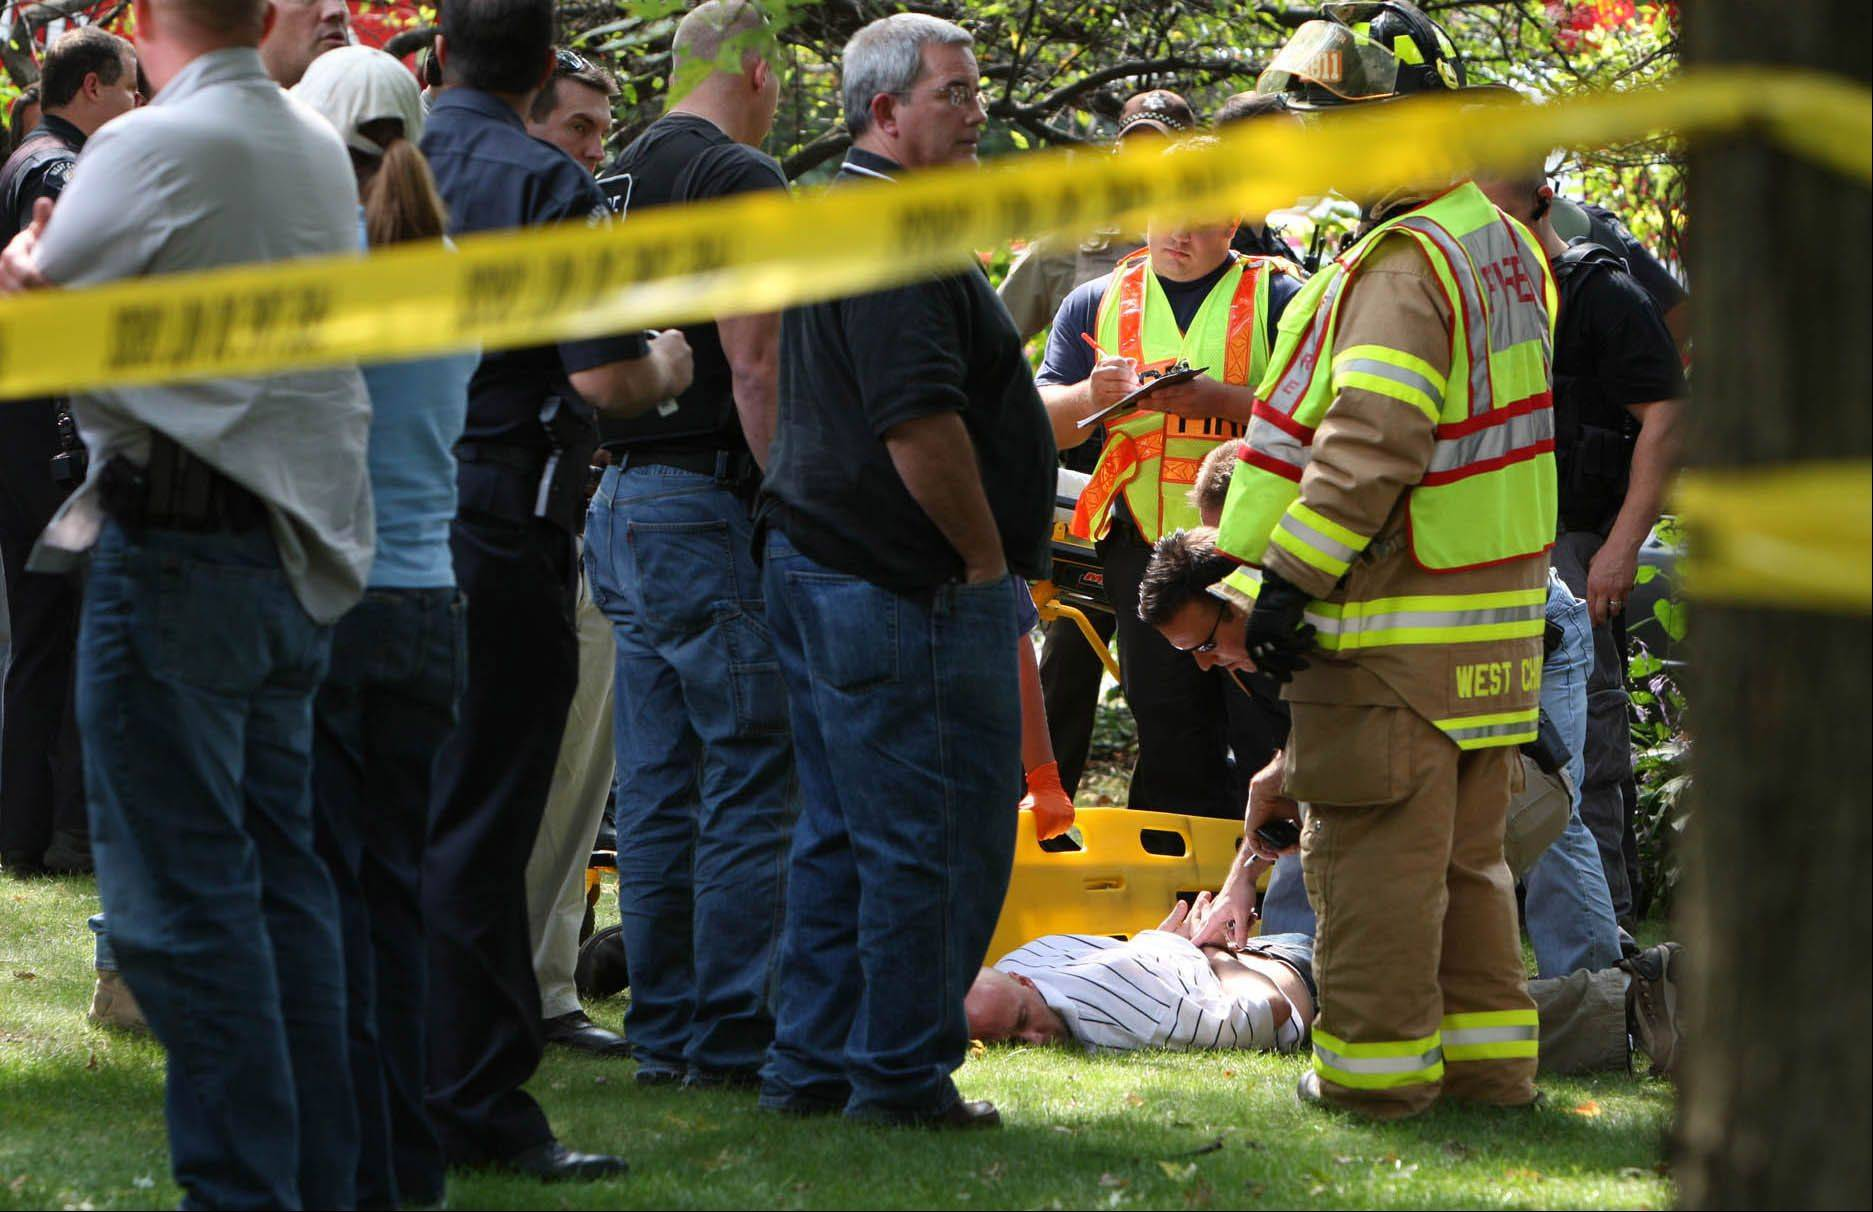 PHOTO BY MIKE ANZALDI Robert Maday, lying on the ground, is surrounded by police and fire officials after crashing his car in West Chicago in September 2009 after a two-day manhunt.